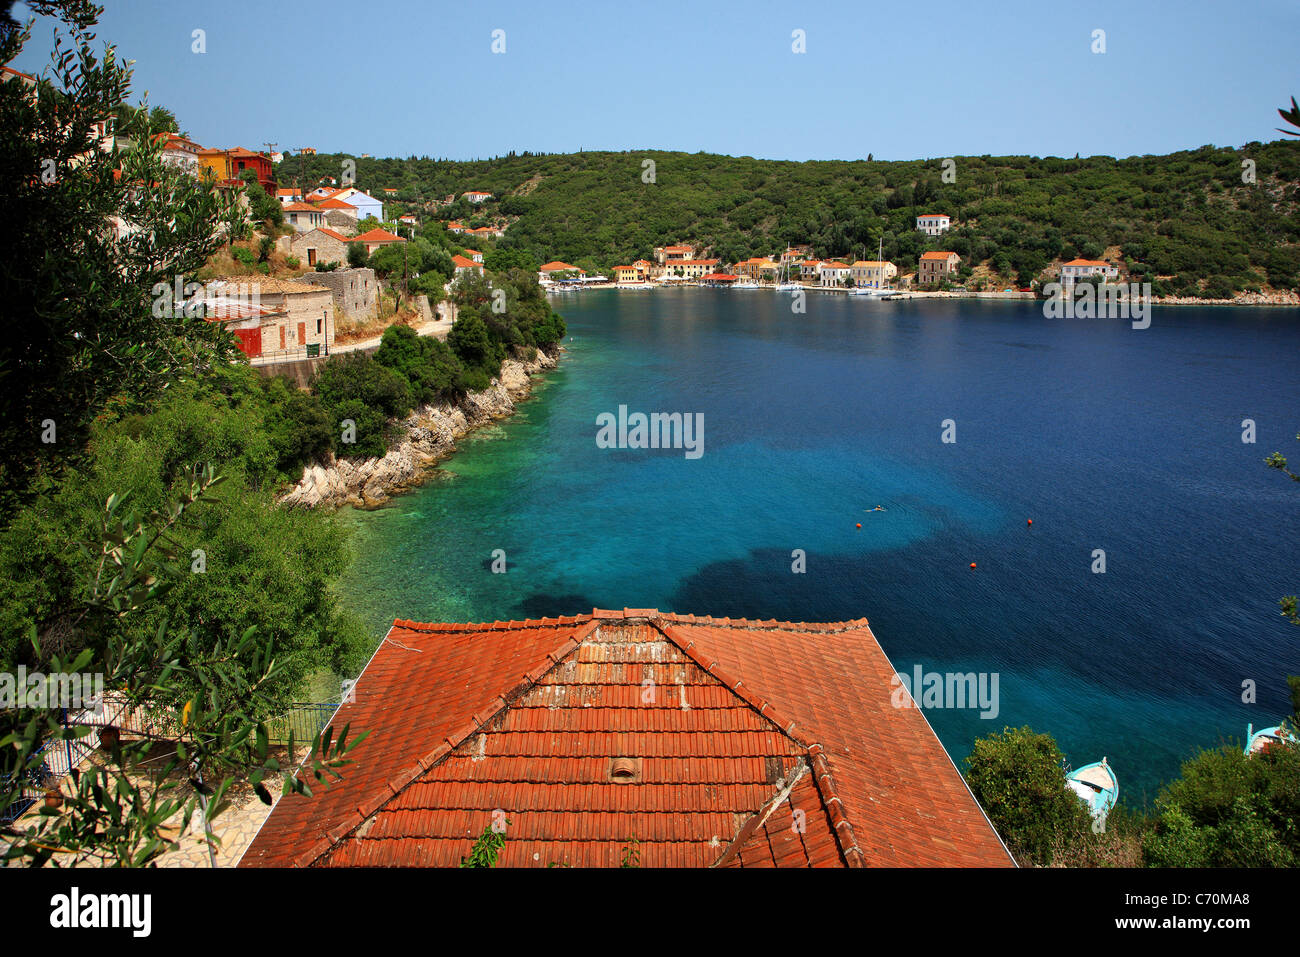 View of Kioni village, the most beautiful of Ithaca island, Ulisses' s homeland. Ionian sea, Greece - Stock Image